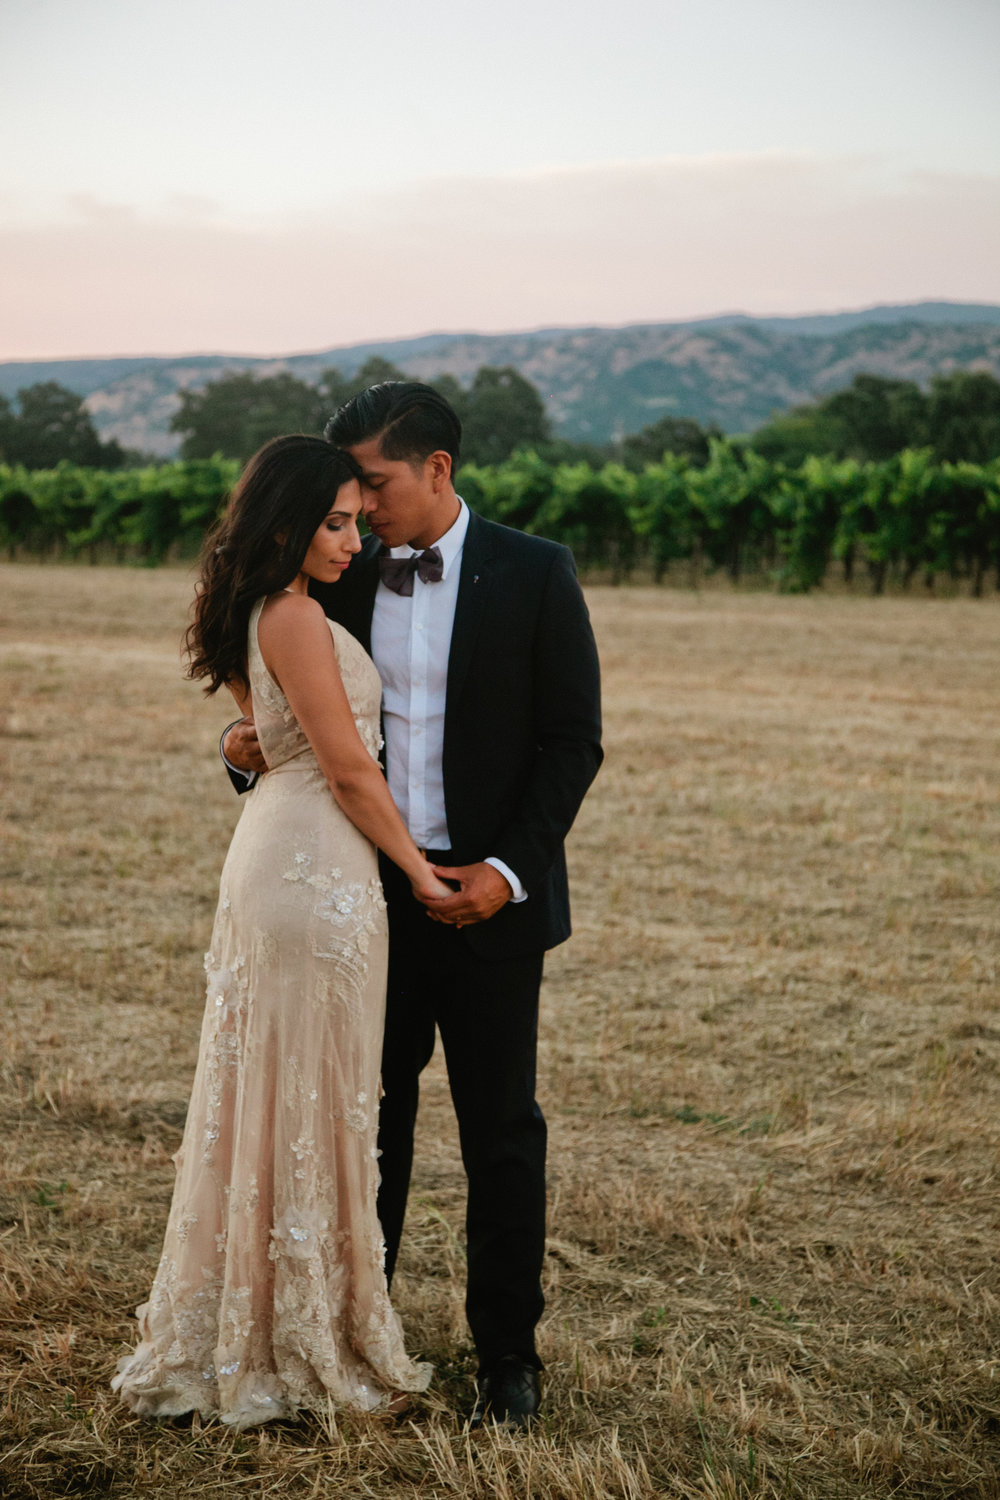 California Wedding Photographer Elopement Travel Destination Napa Valley Elope Couple Photography Lifestyle Candid Artistic Creative Bohemian Romantic Vineyard Inspiration